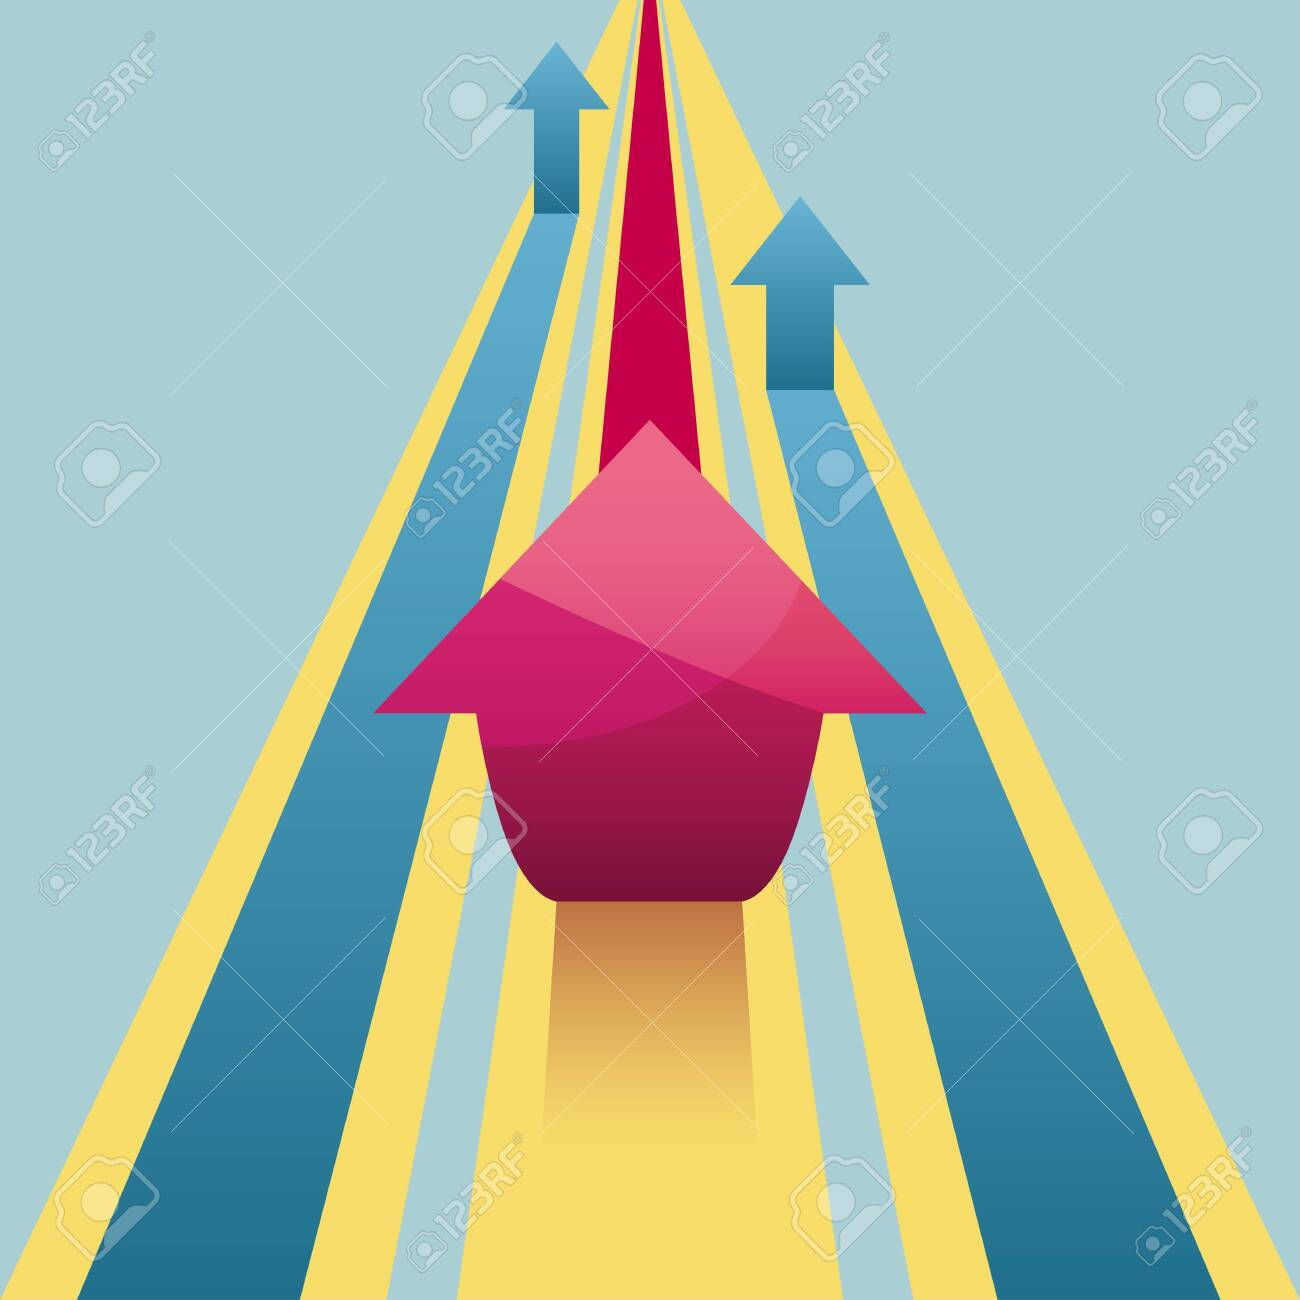 Creative design of the arrow isolated on blue background. - 131437426